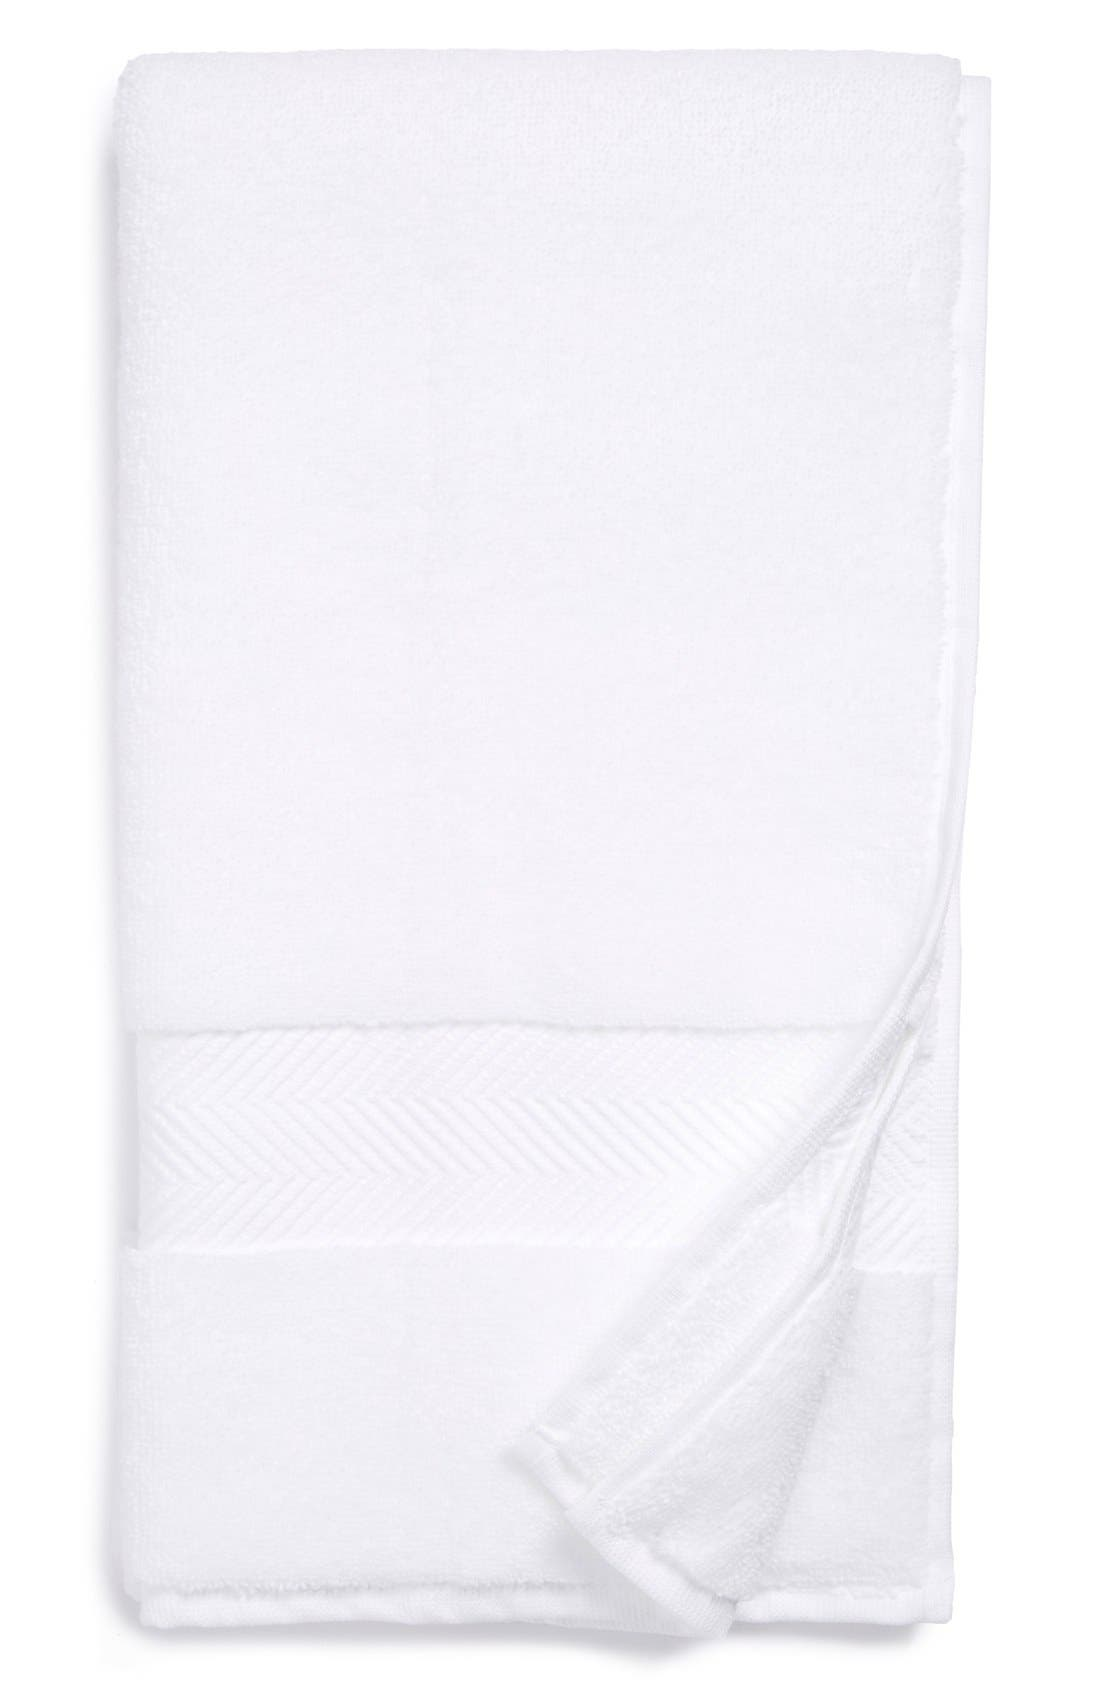 Hydrocotton Hand Towel,                             Main thumbnail 1, color,                             WHITE